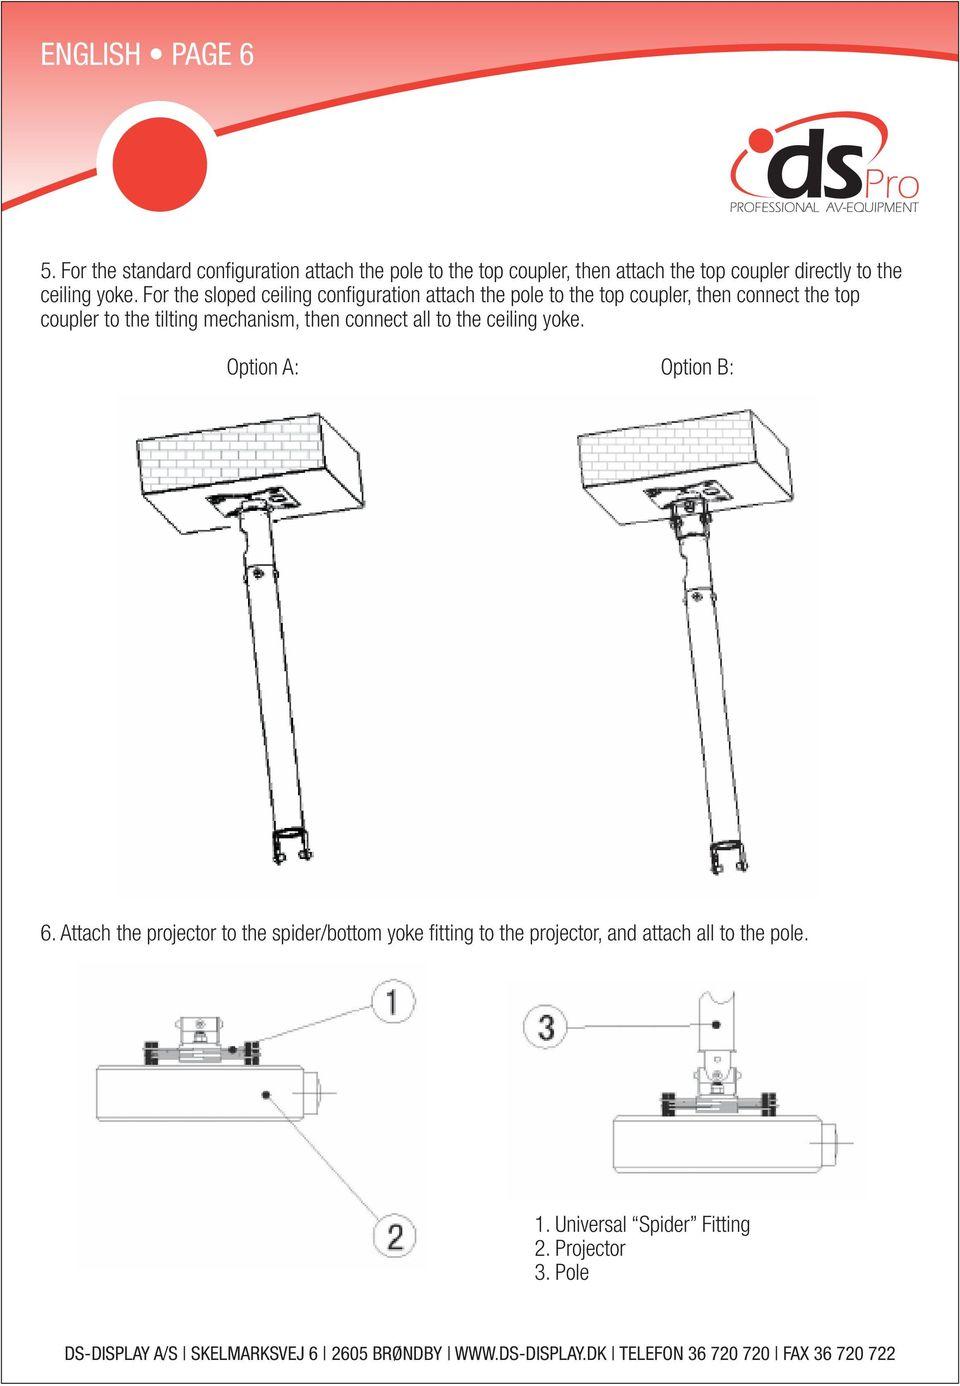 yoke. For the sloped ceiling configuration attach the pole to the top coupler, then connect the top coupler to the